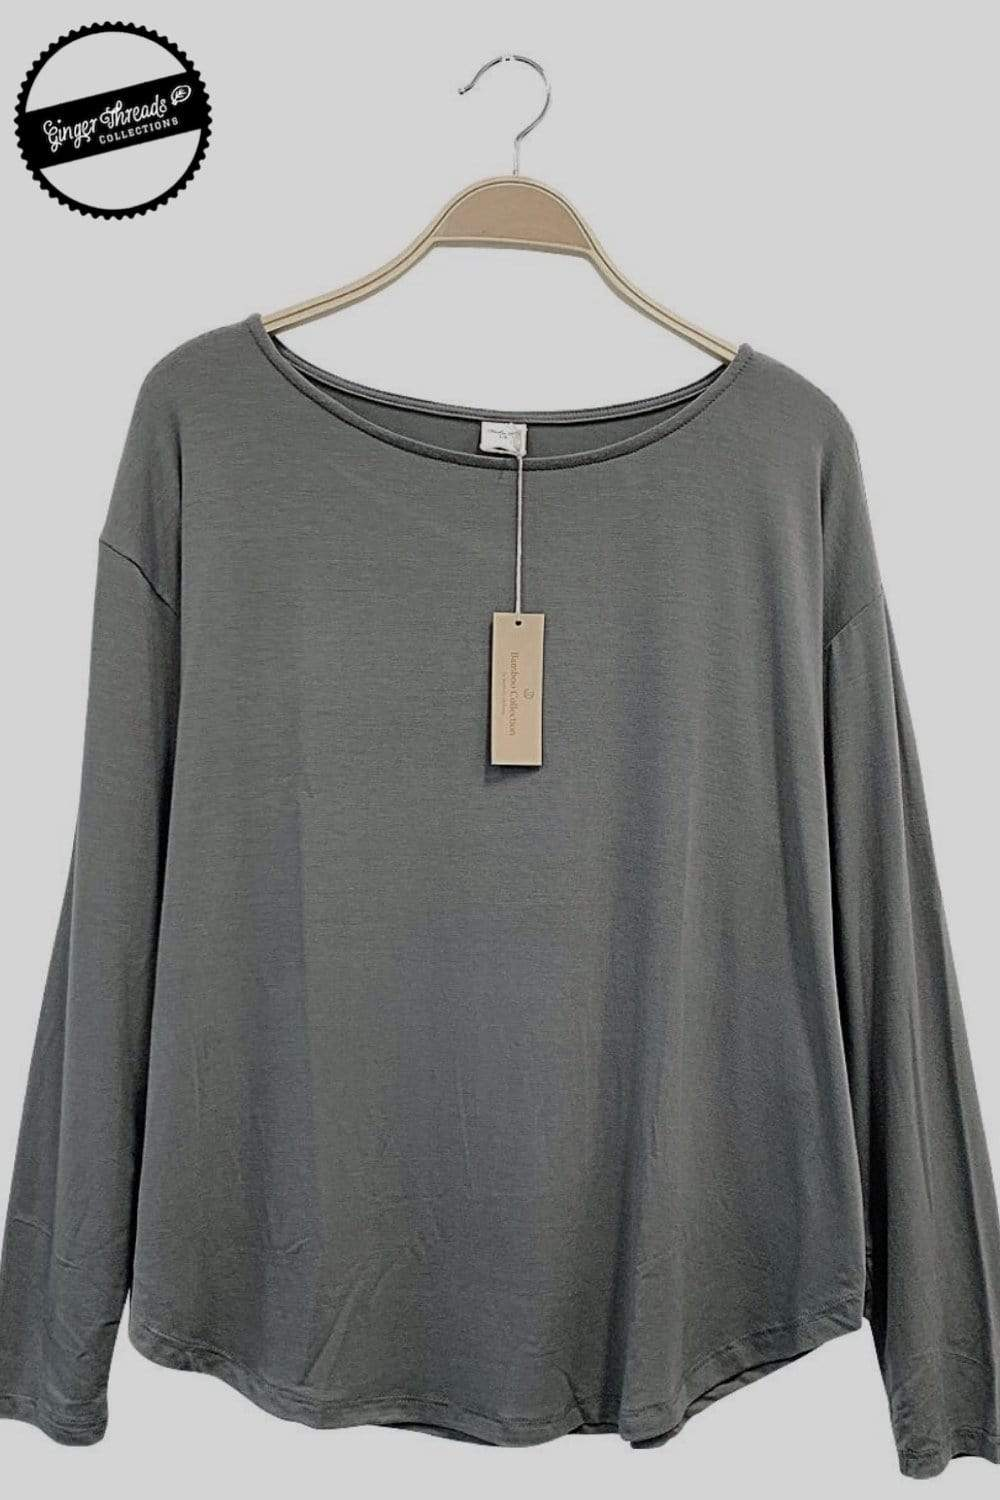 Ginger Threads Collections top Grey Bamboo Long Sleeve Top